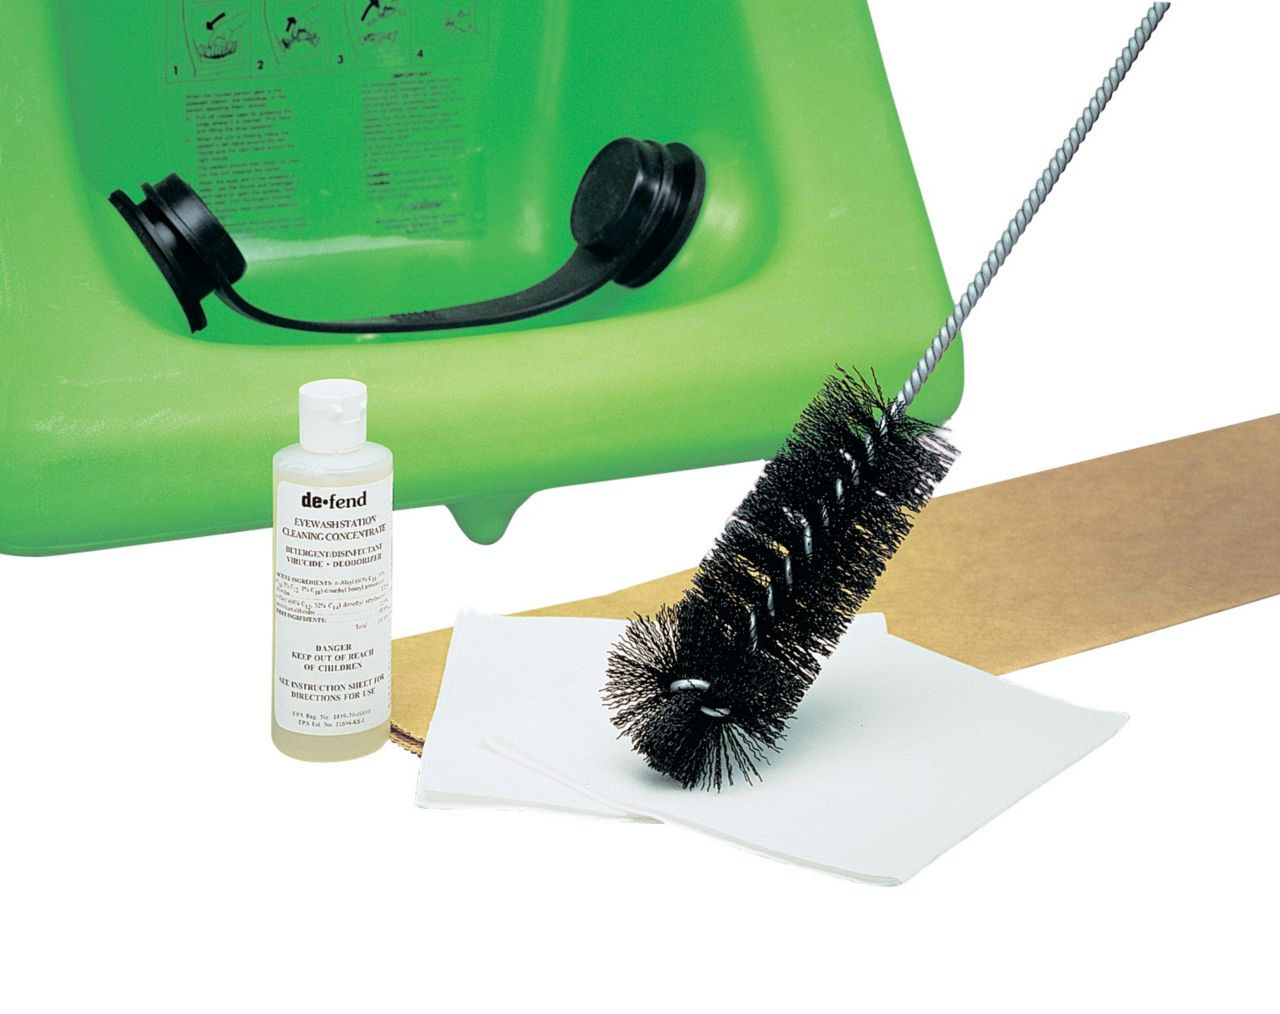 Honeywell Eyewash Cleaning Kit_4